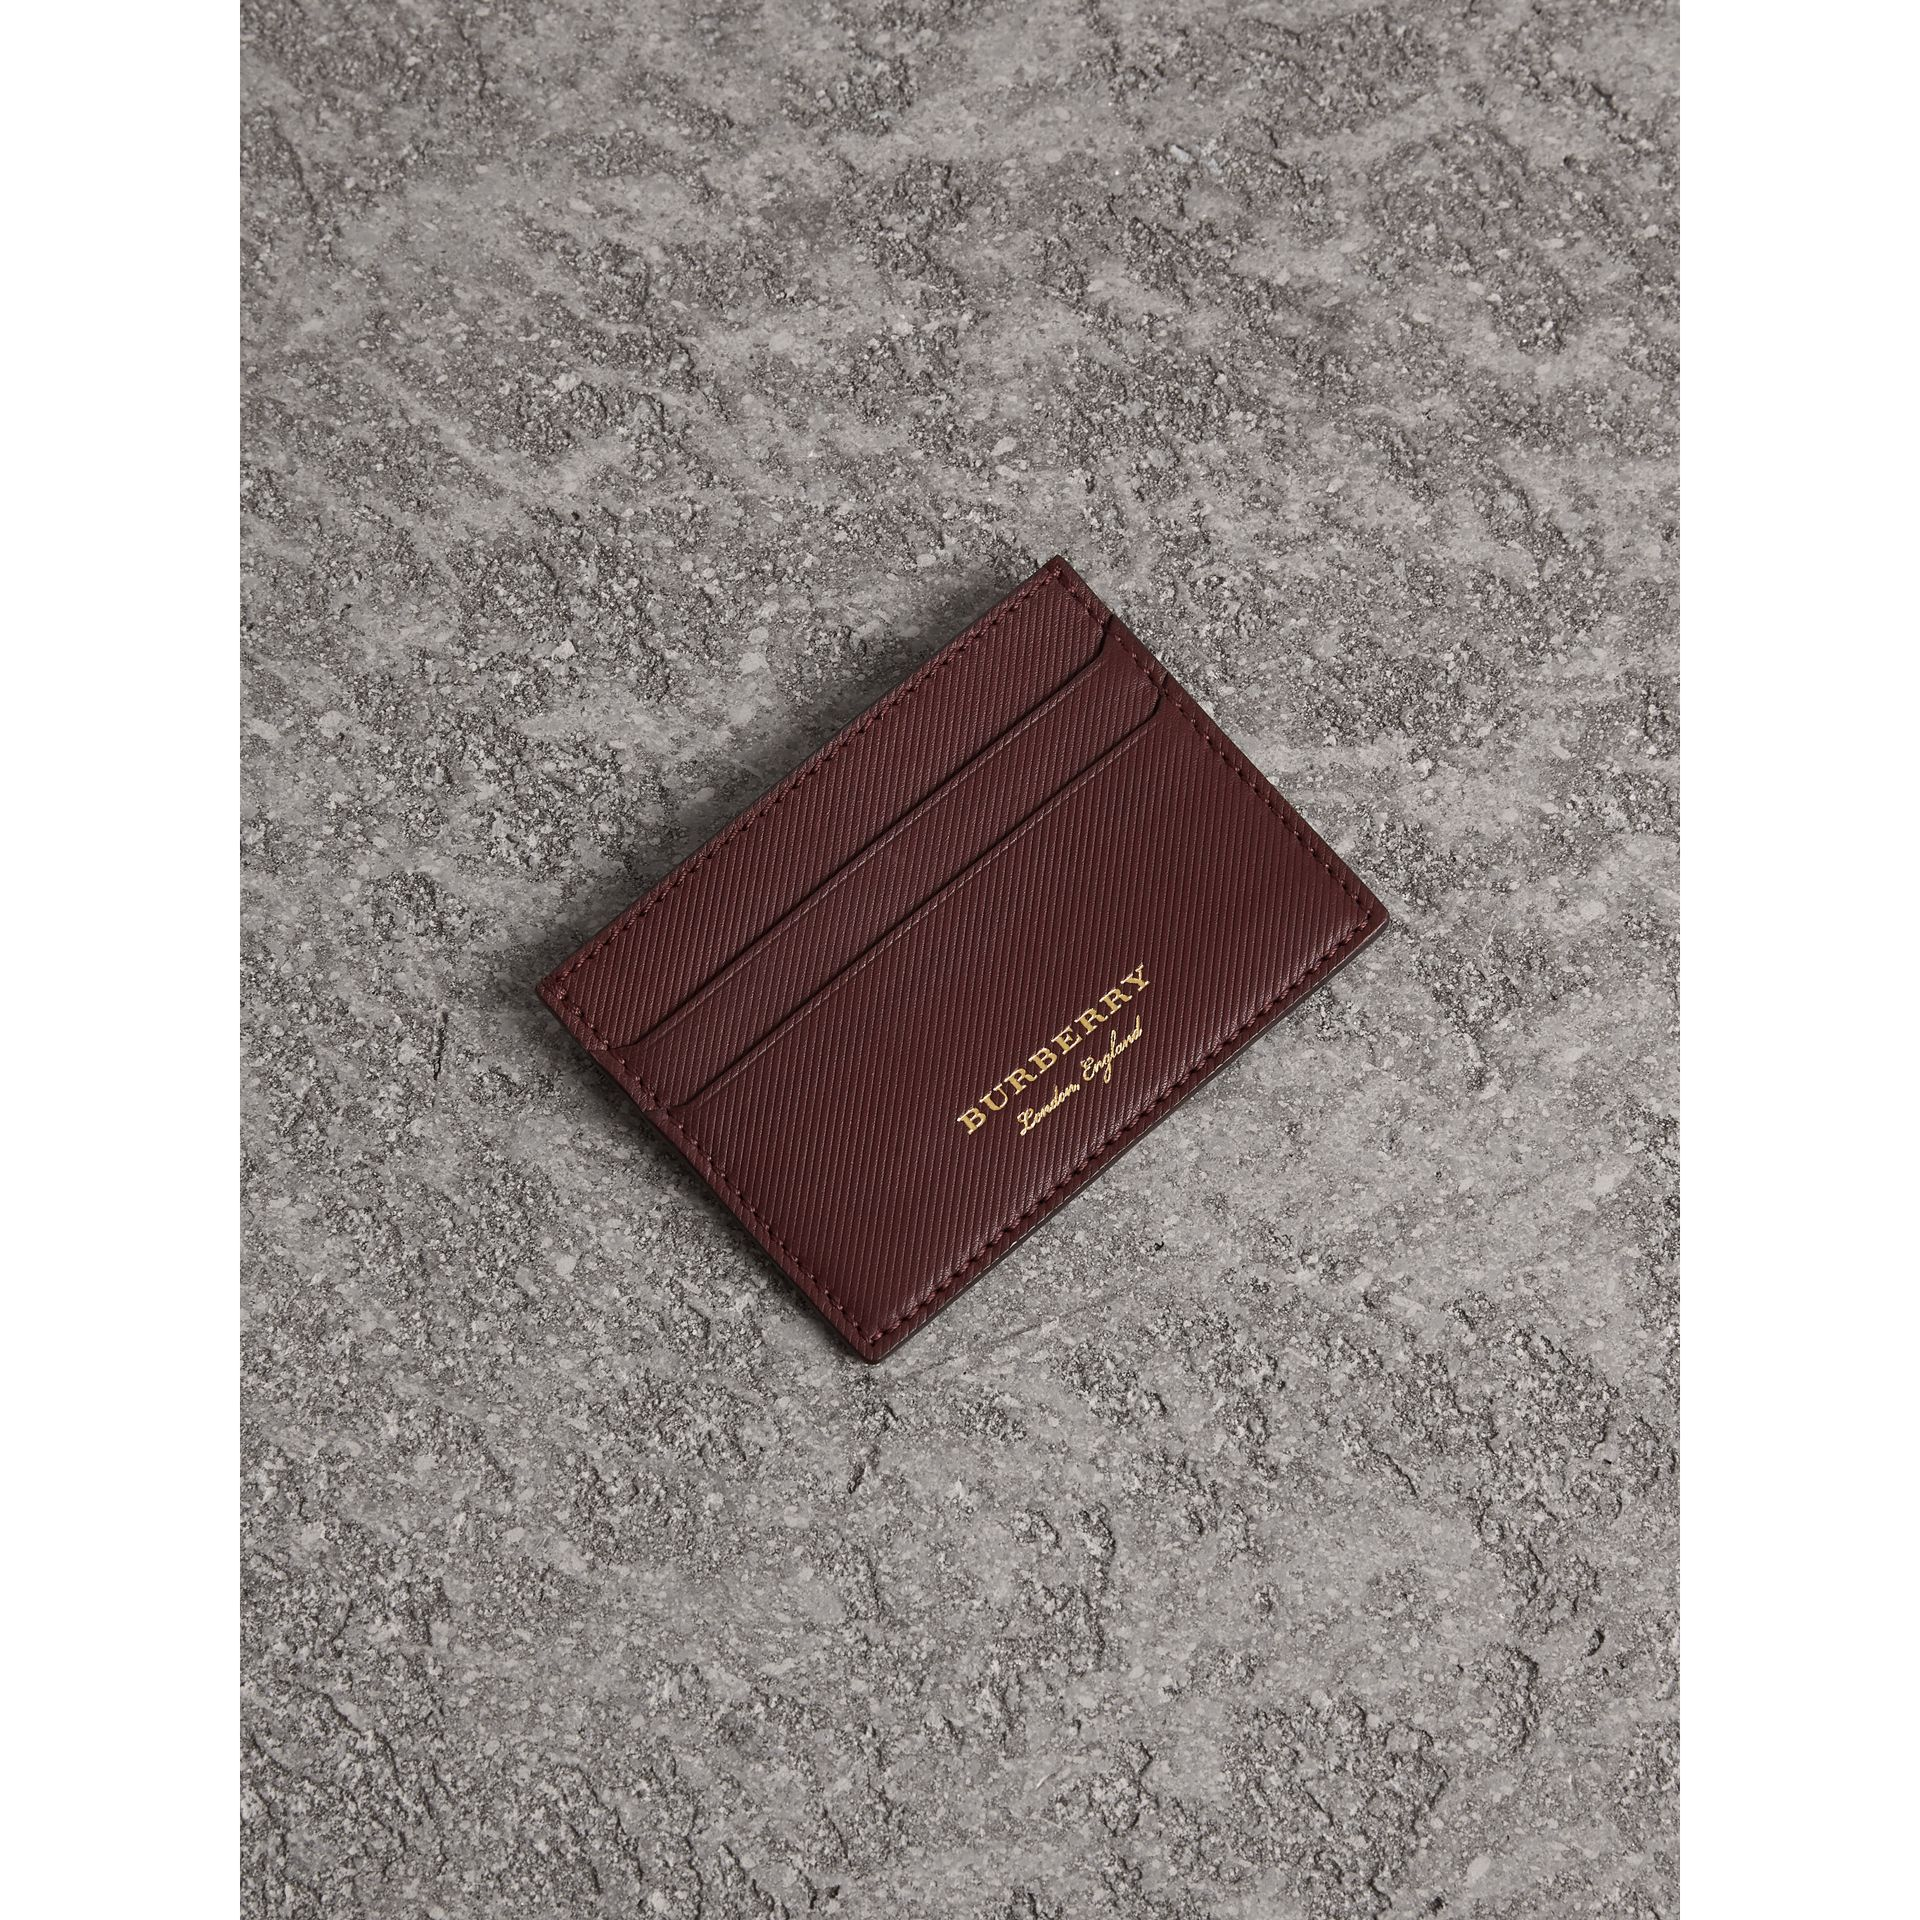 Trench Leather Card Case in Wine - Men | Burberry - gallery image 1